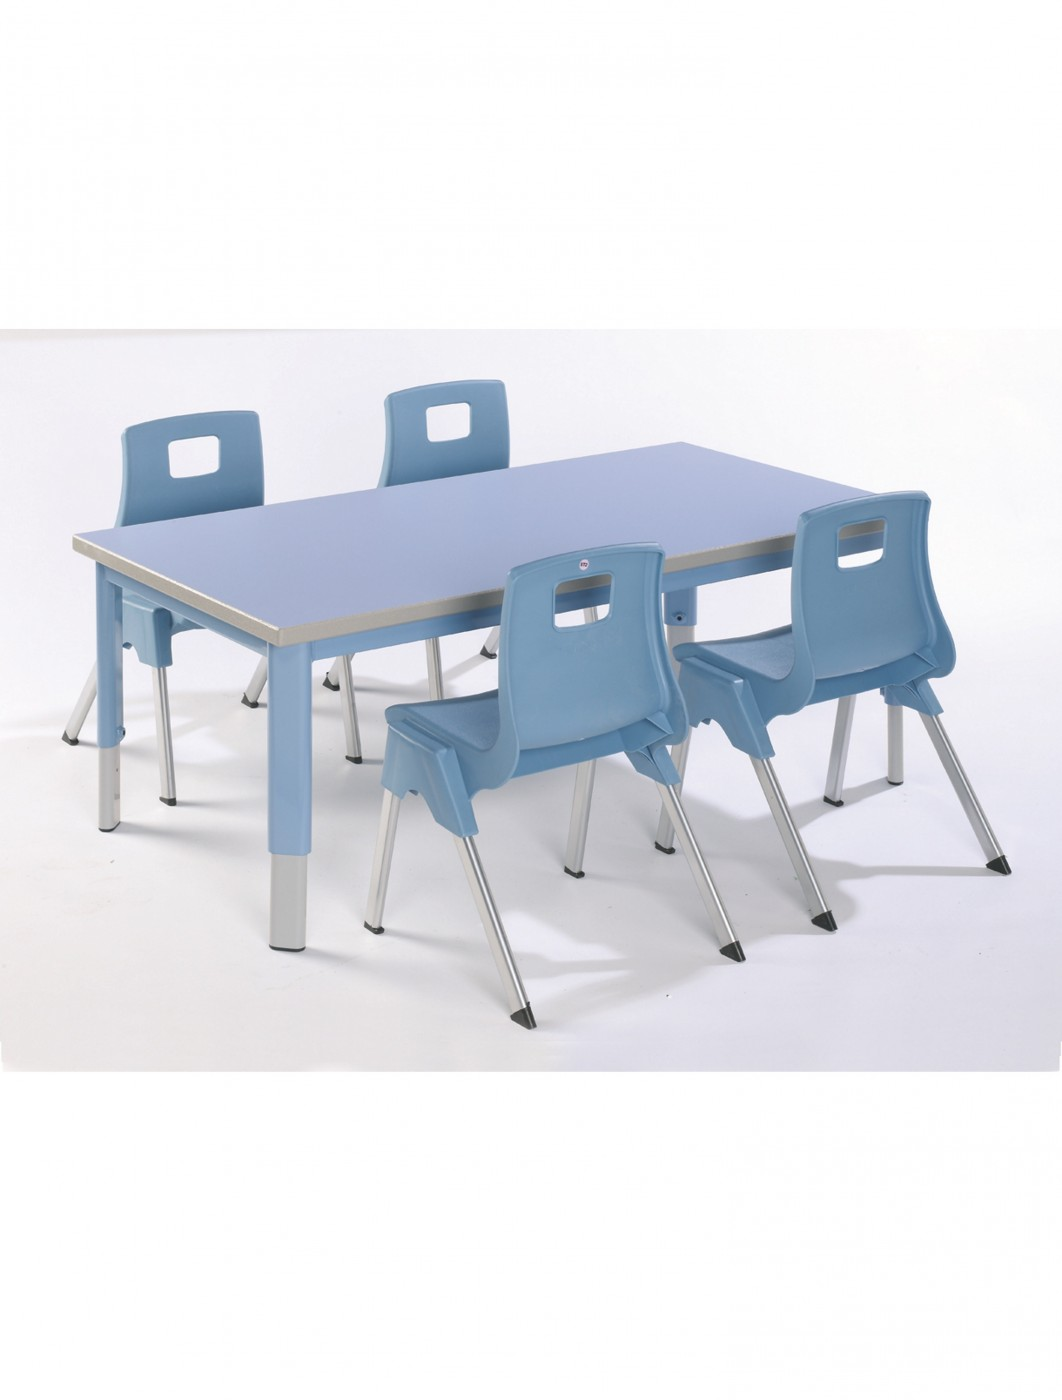 international school chair buy small e chairs classroom series tts